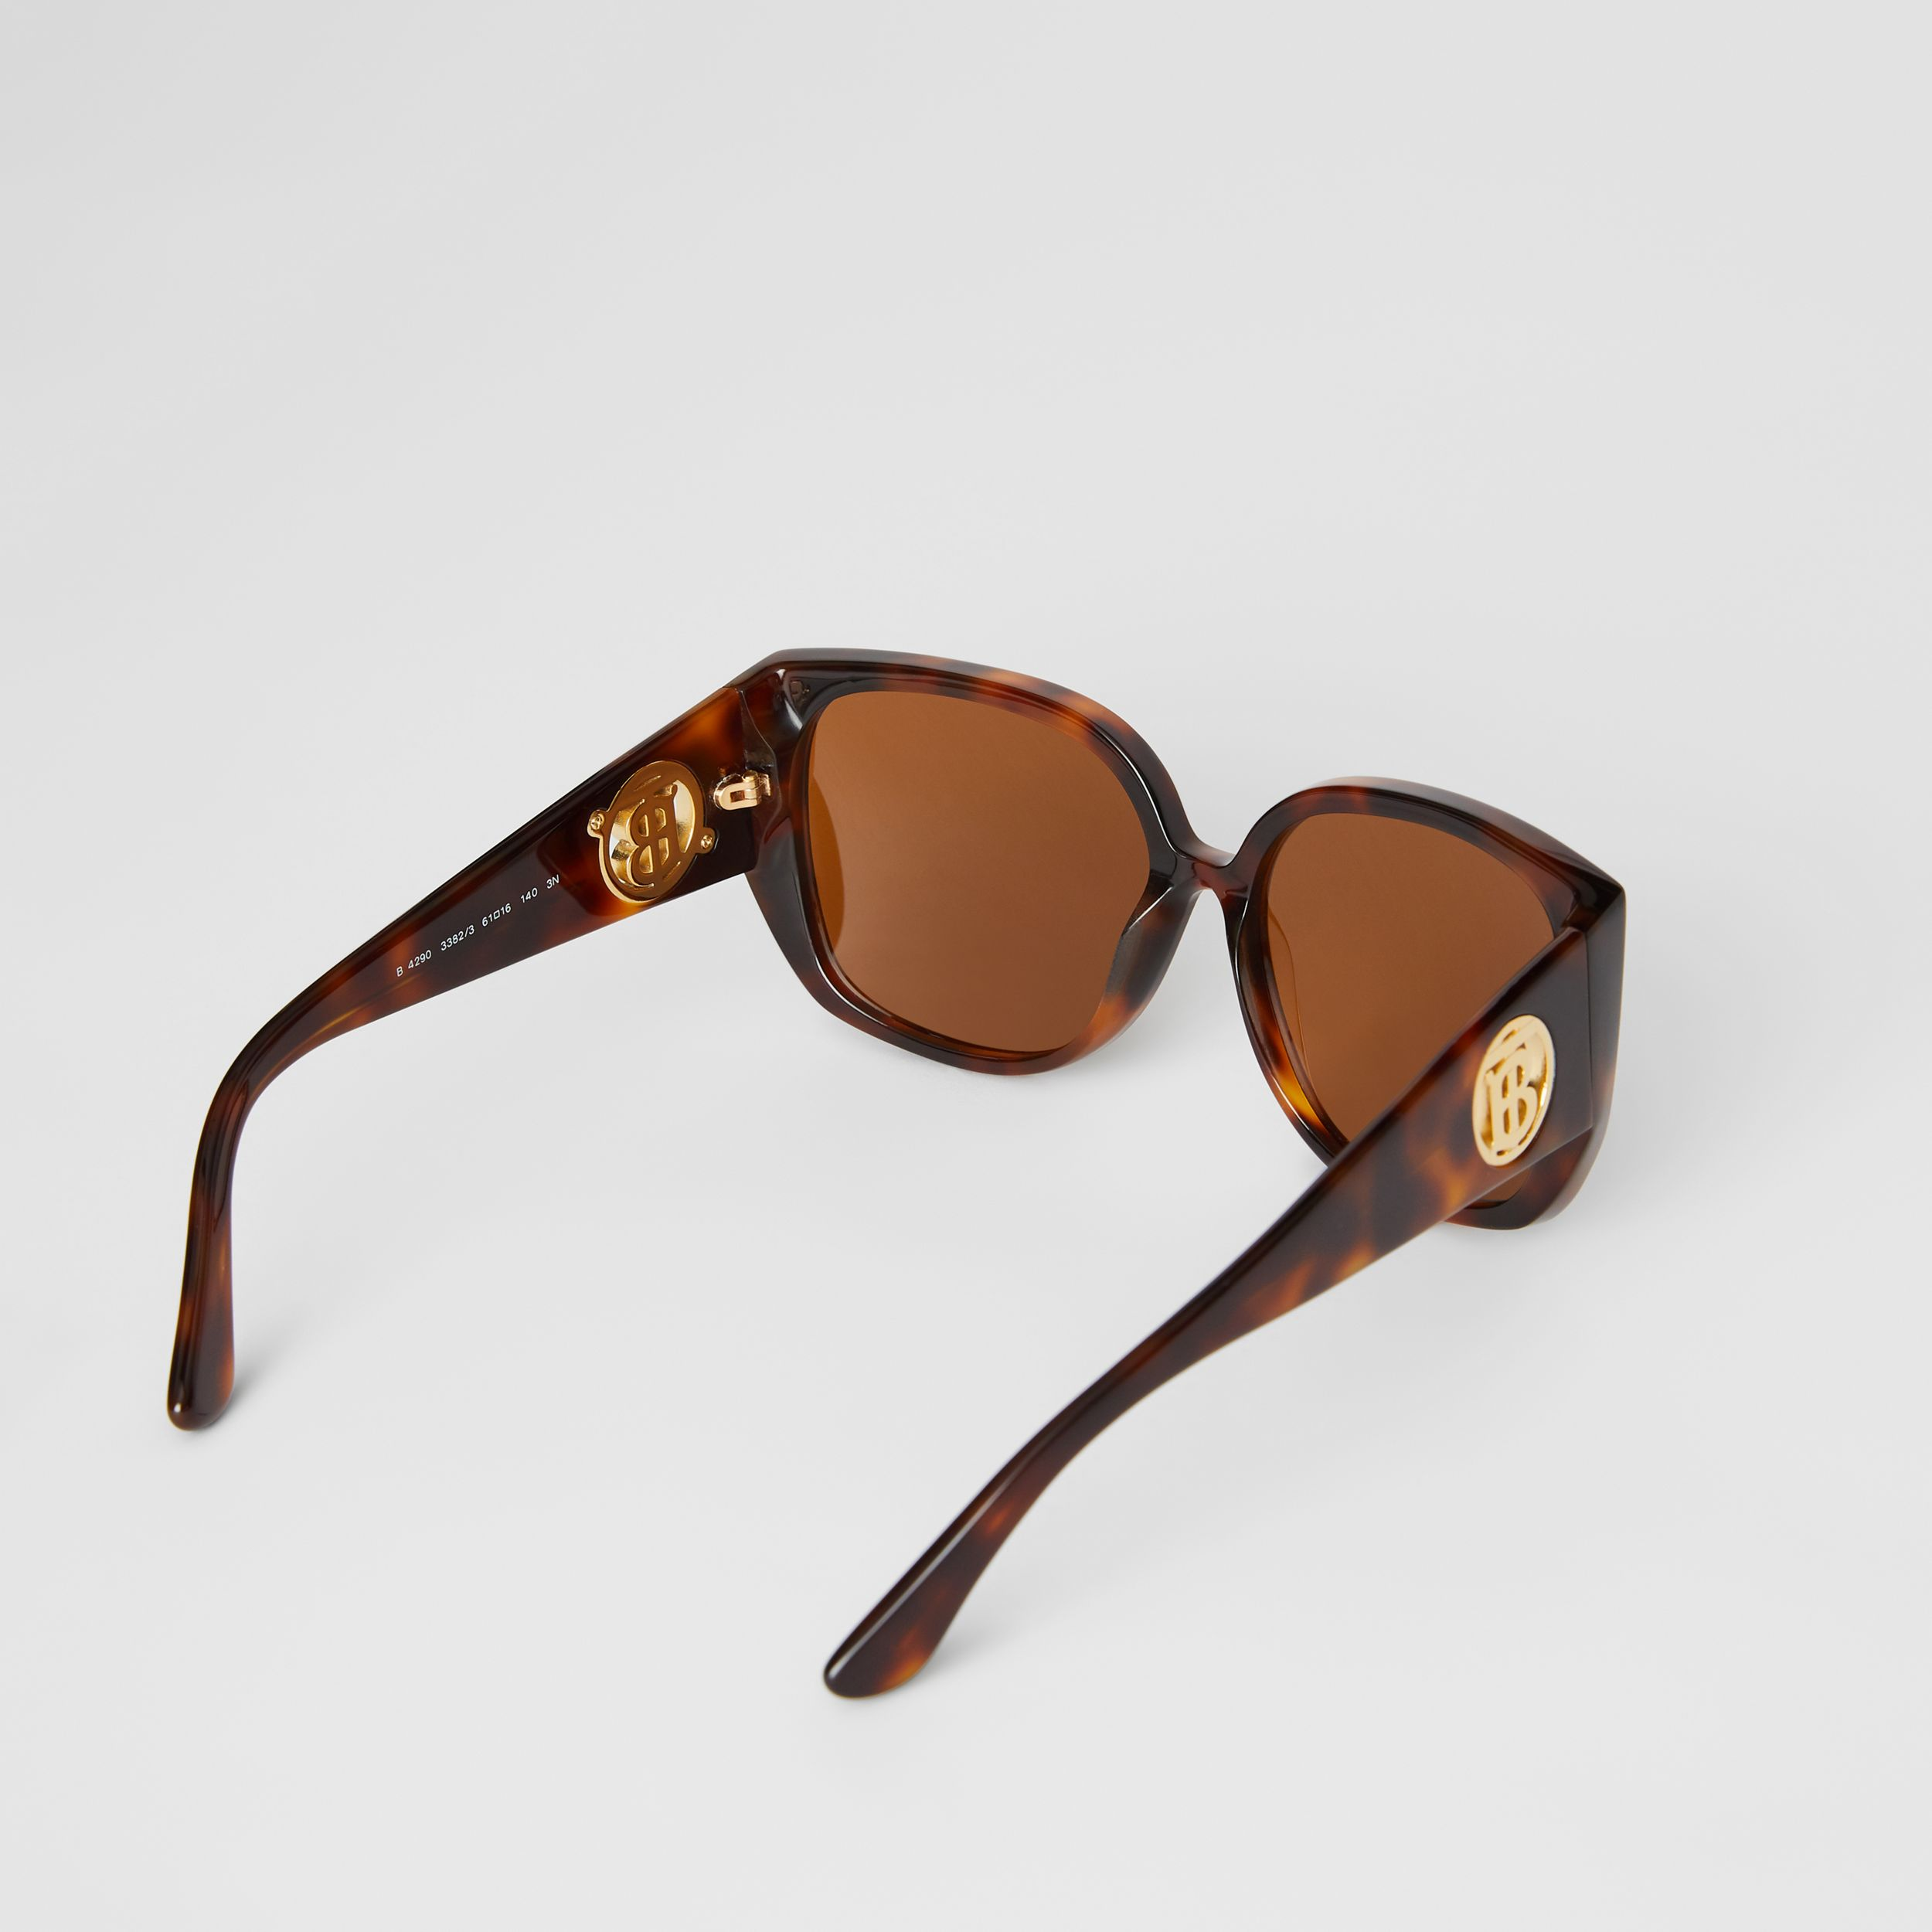 Oversized Butterfly Frame Sunglasses in Tortoiseshell - Women | Burberry - 4